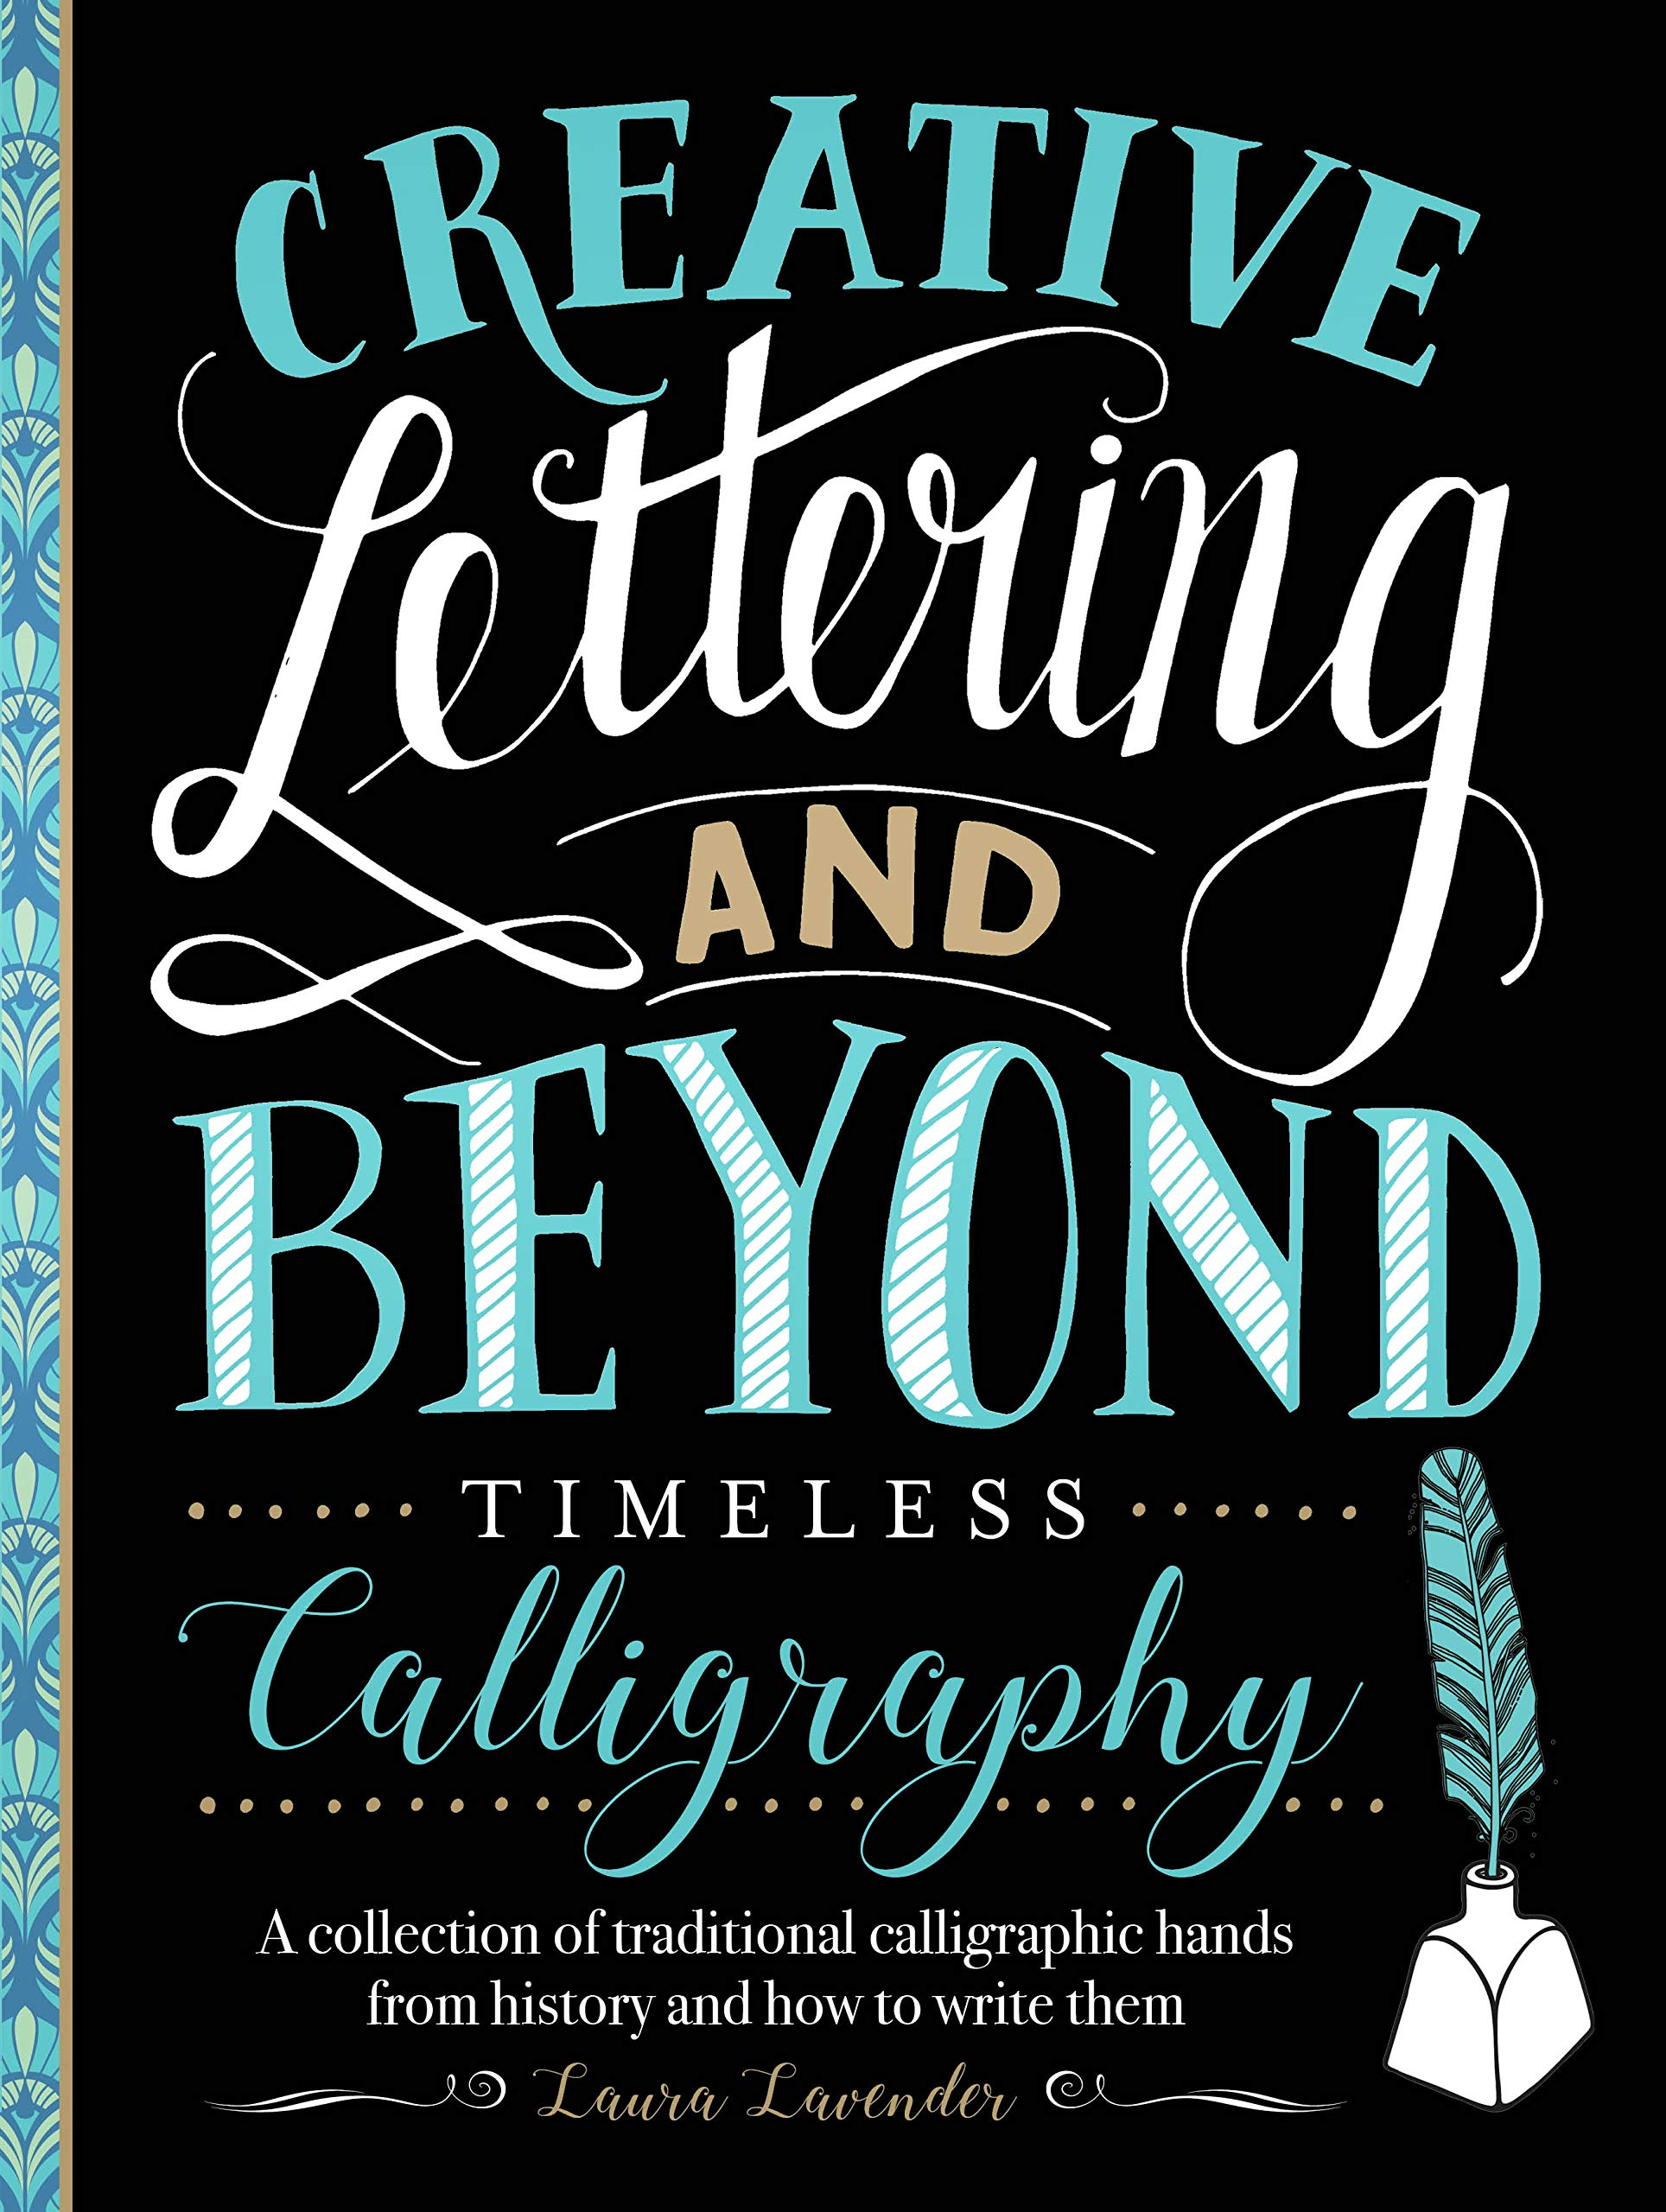 creative lettering and beyond  Creative Lettering and Beyond: Timeless Calligraphy: A collection of ...